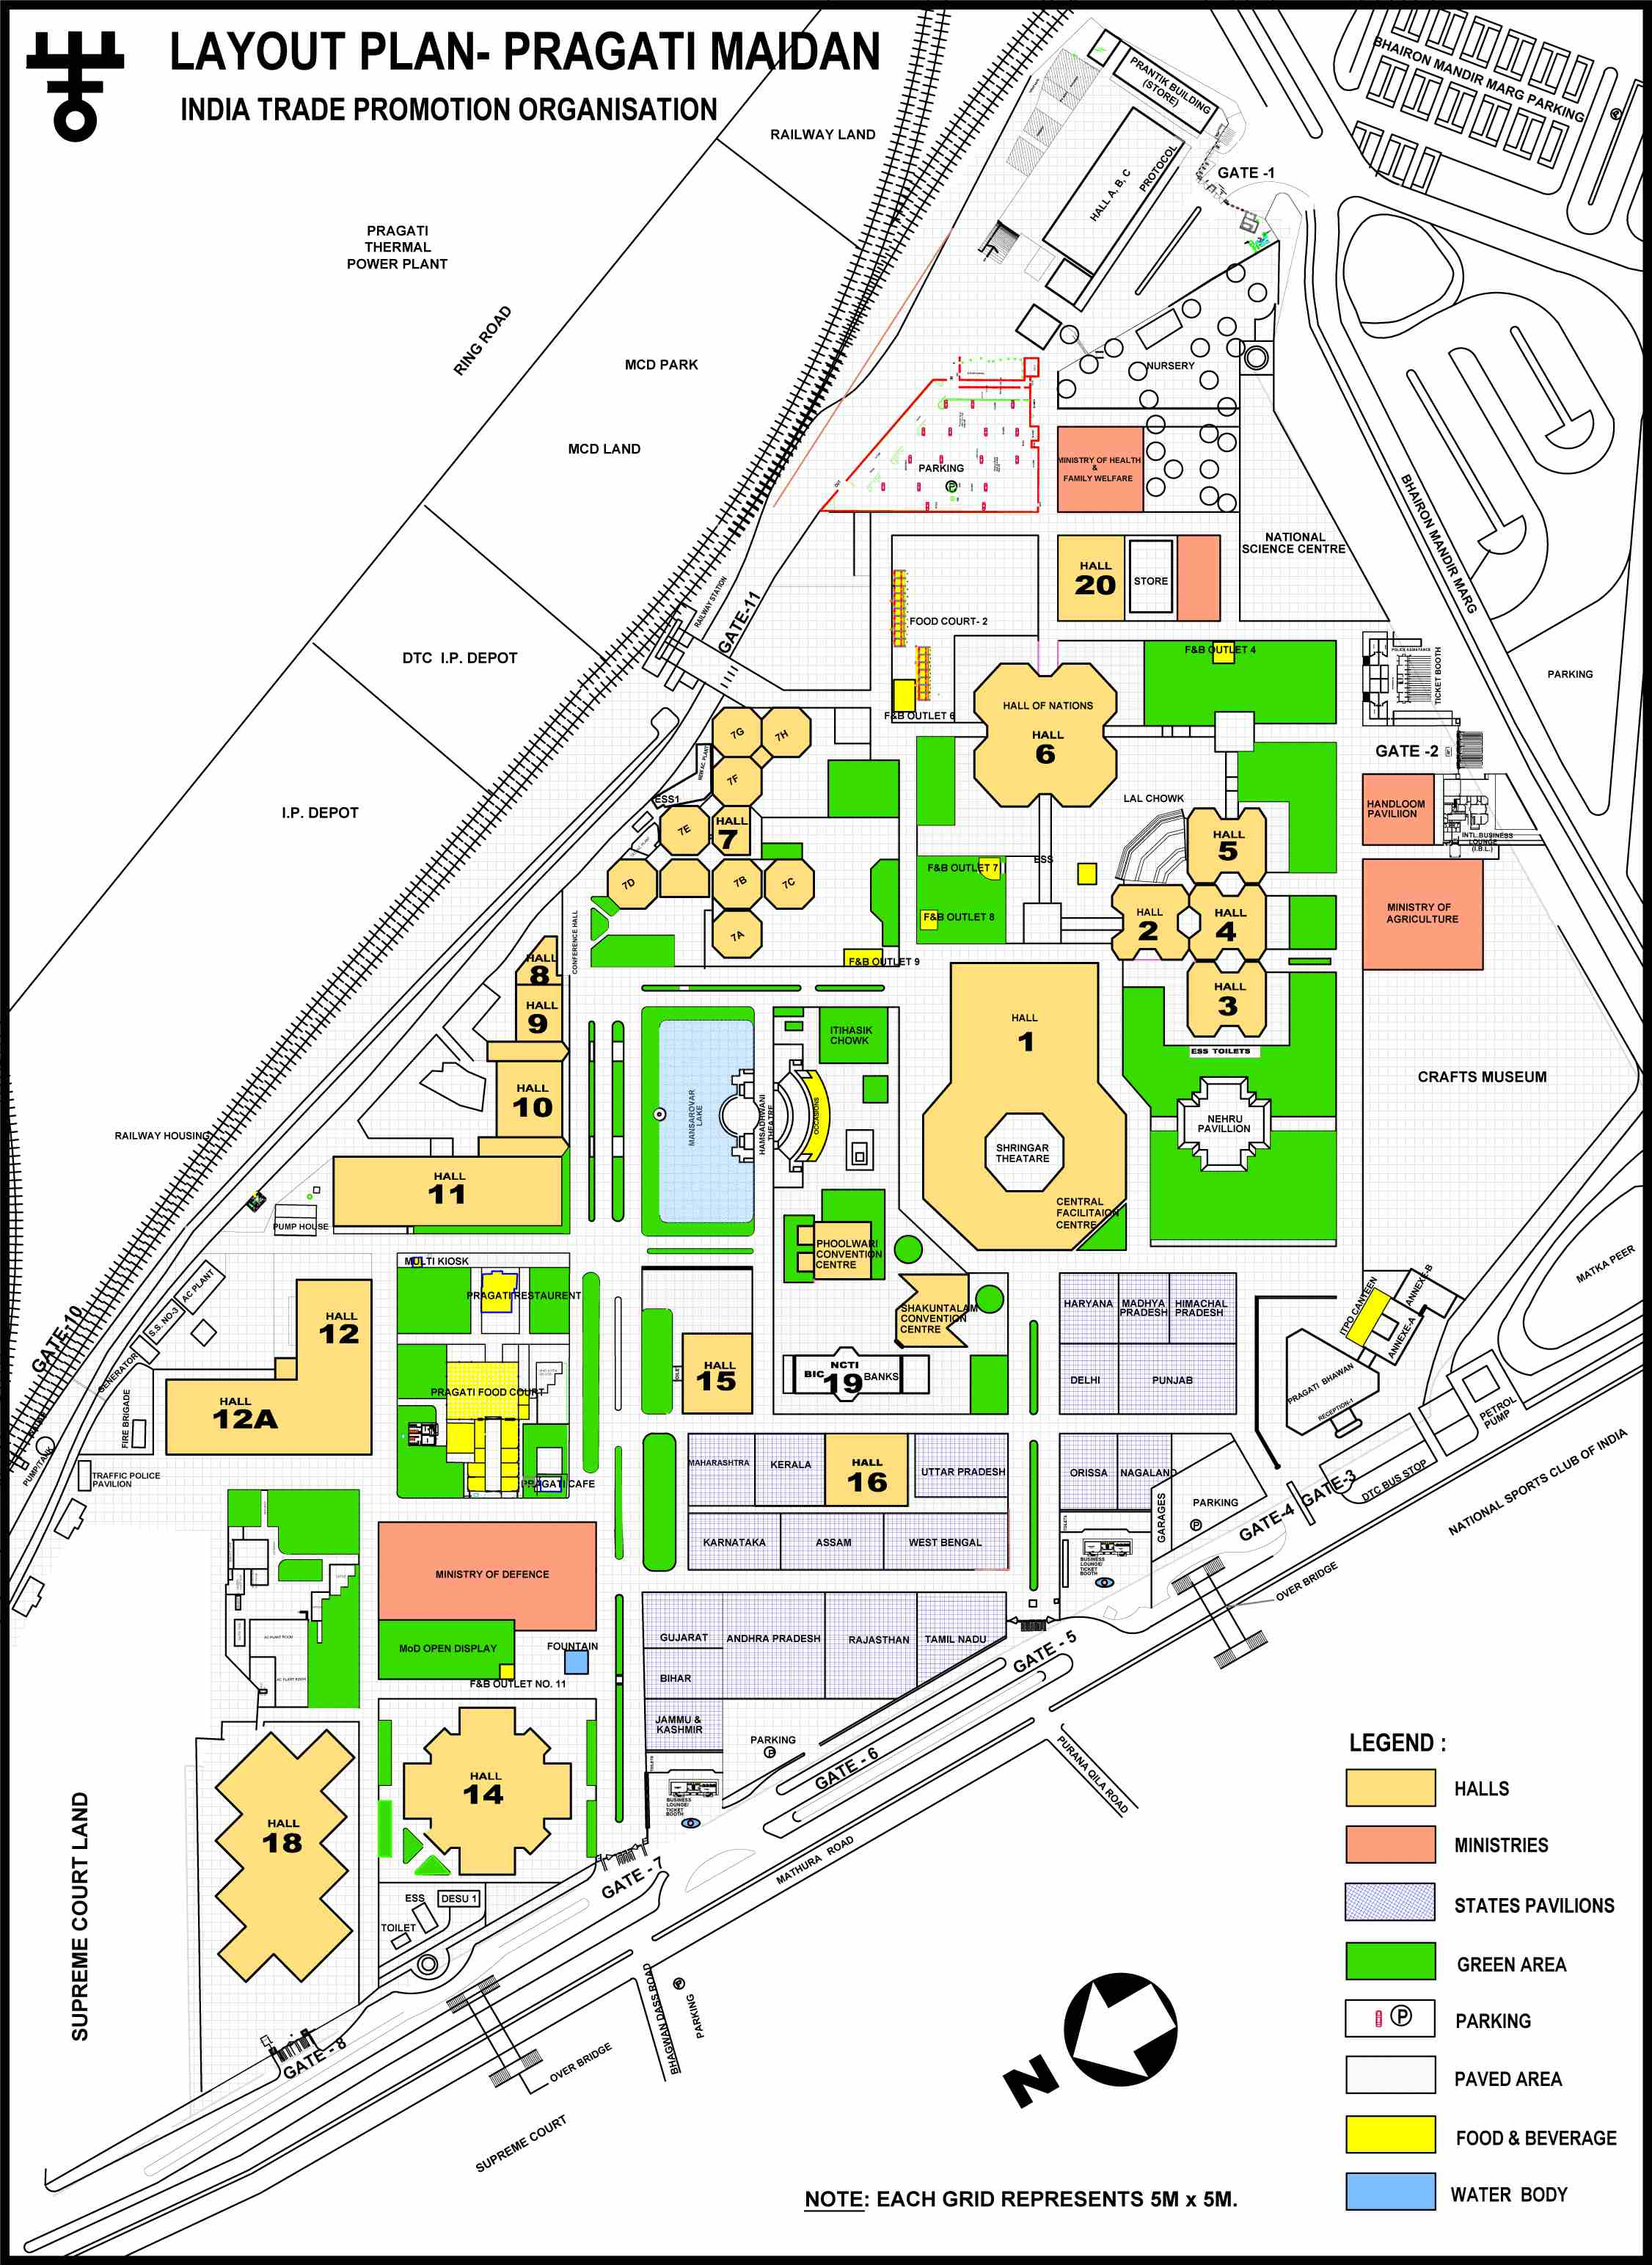 Pragati Maidan Layout for Trade Fair Delhi 2016 showing nearby road, entry gates, parking area etc.